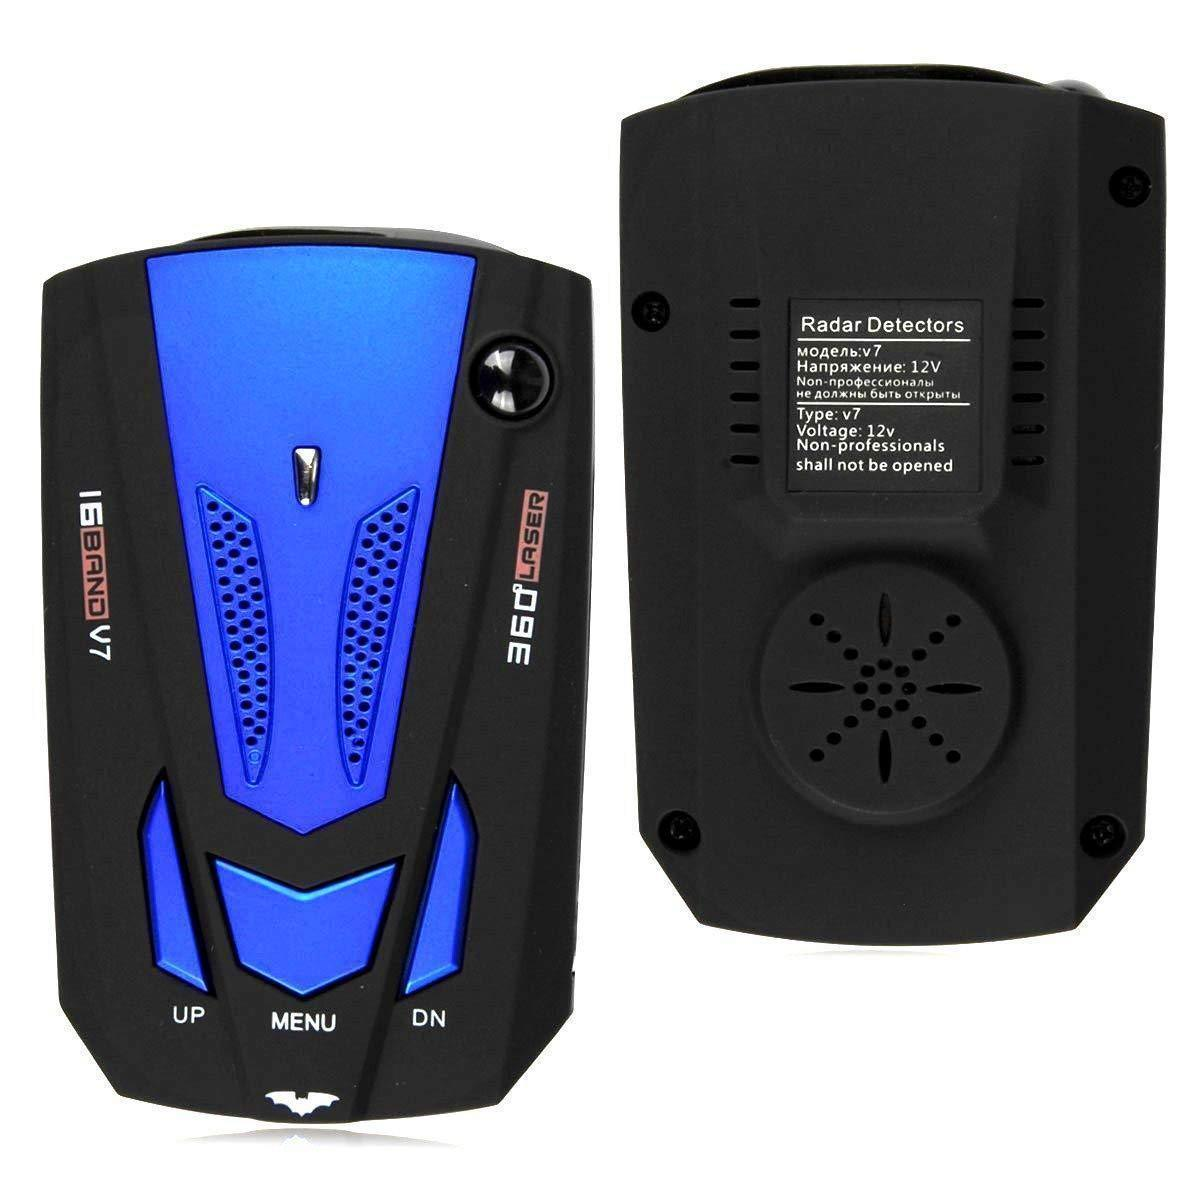 Radar Detector - ( 360 Degree Detection and Bright LED Display )